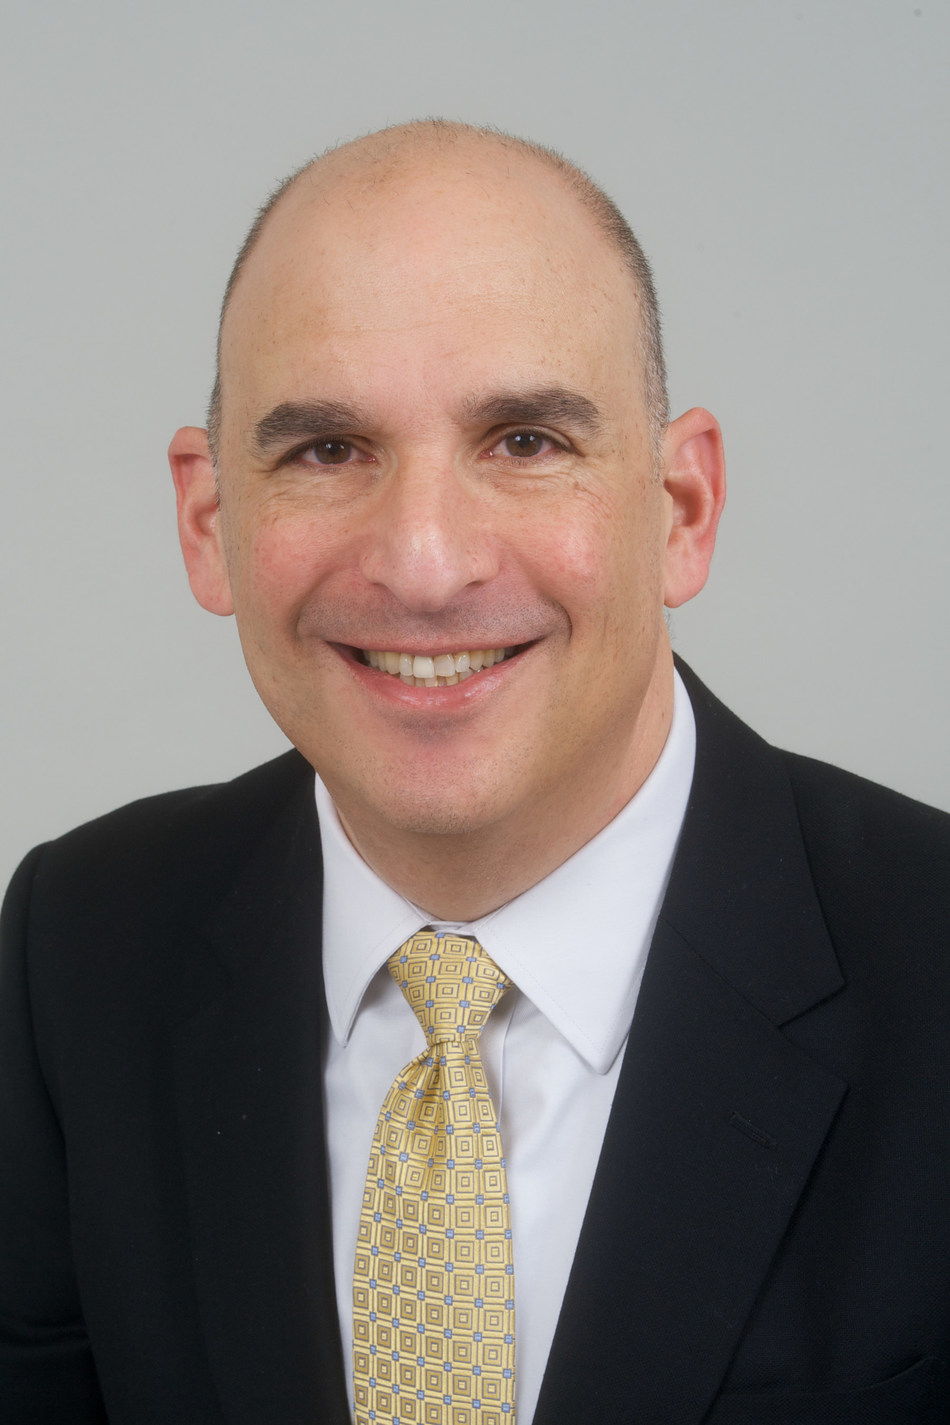 Madison Street Capital hires Jim Cohen as new Managing Director